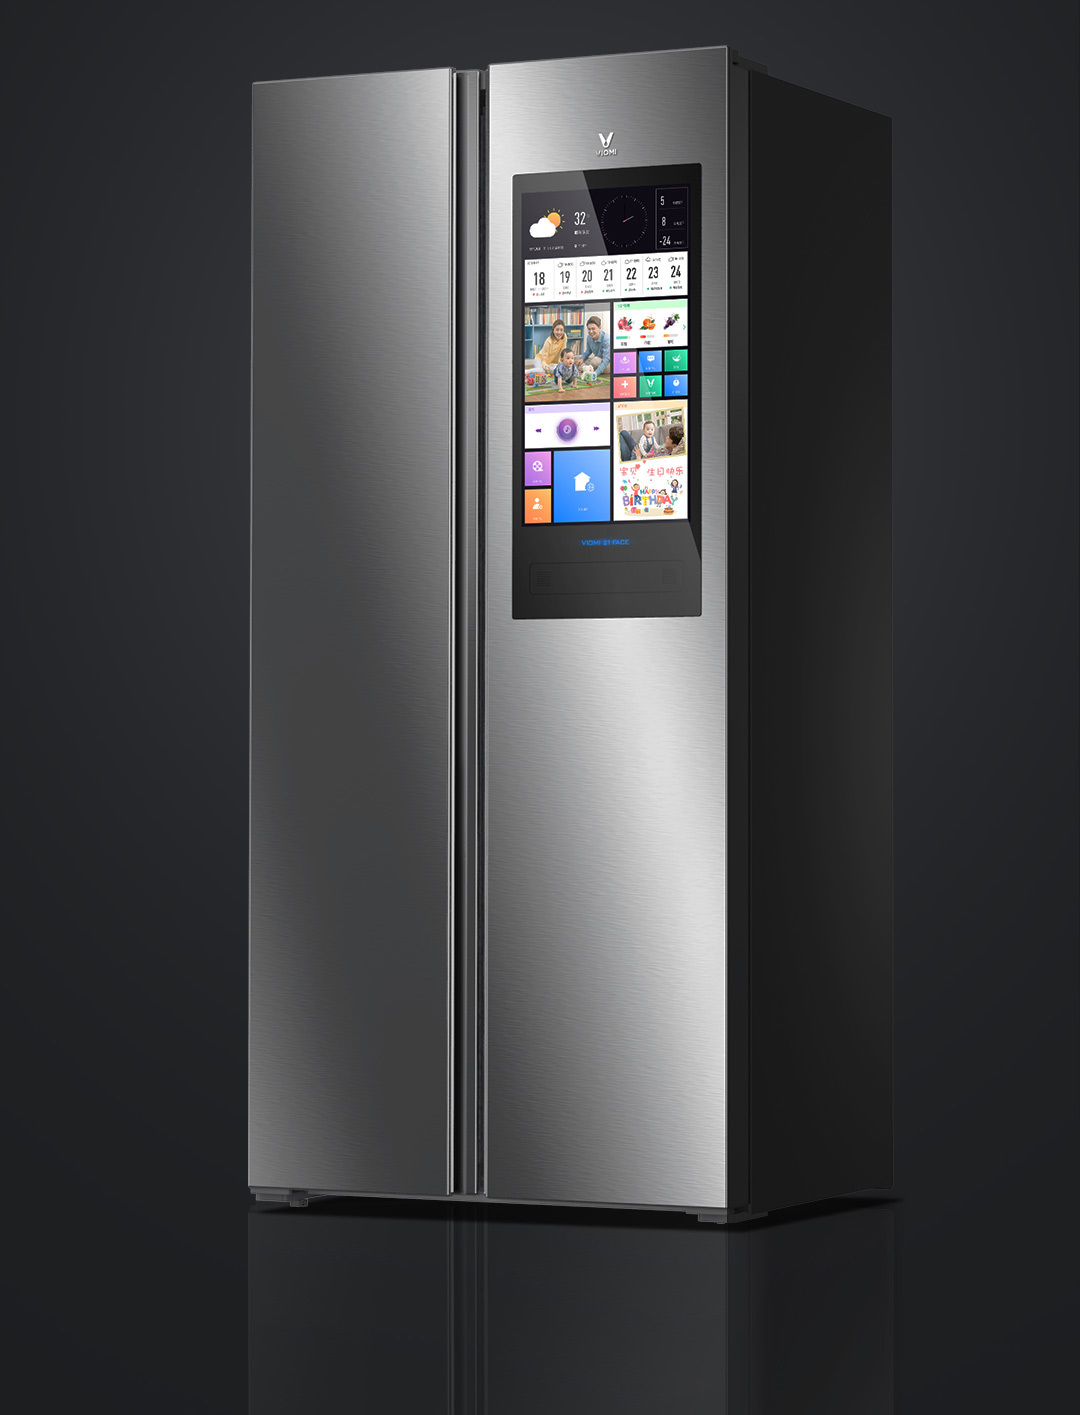 Xiaomi Yunmi fridge with 21 inch display